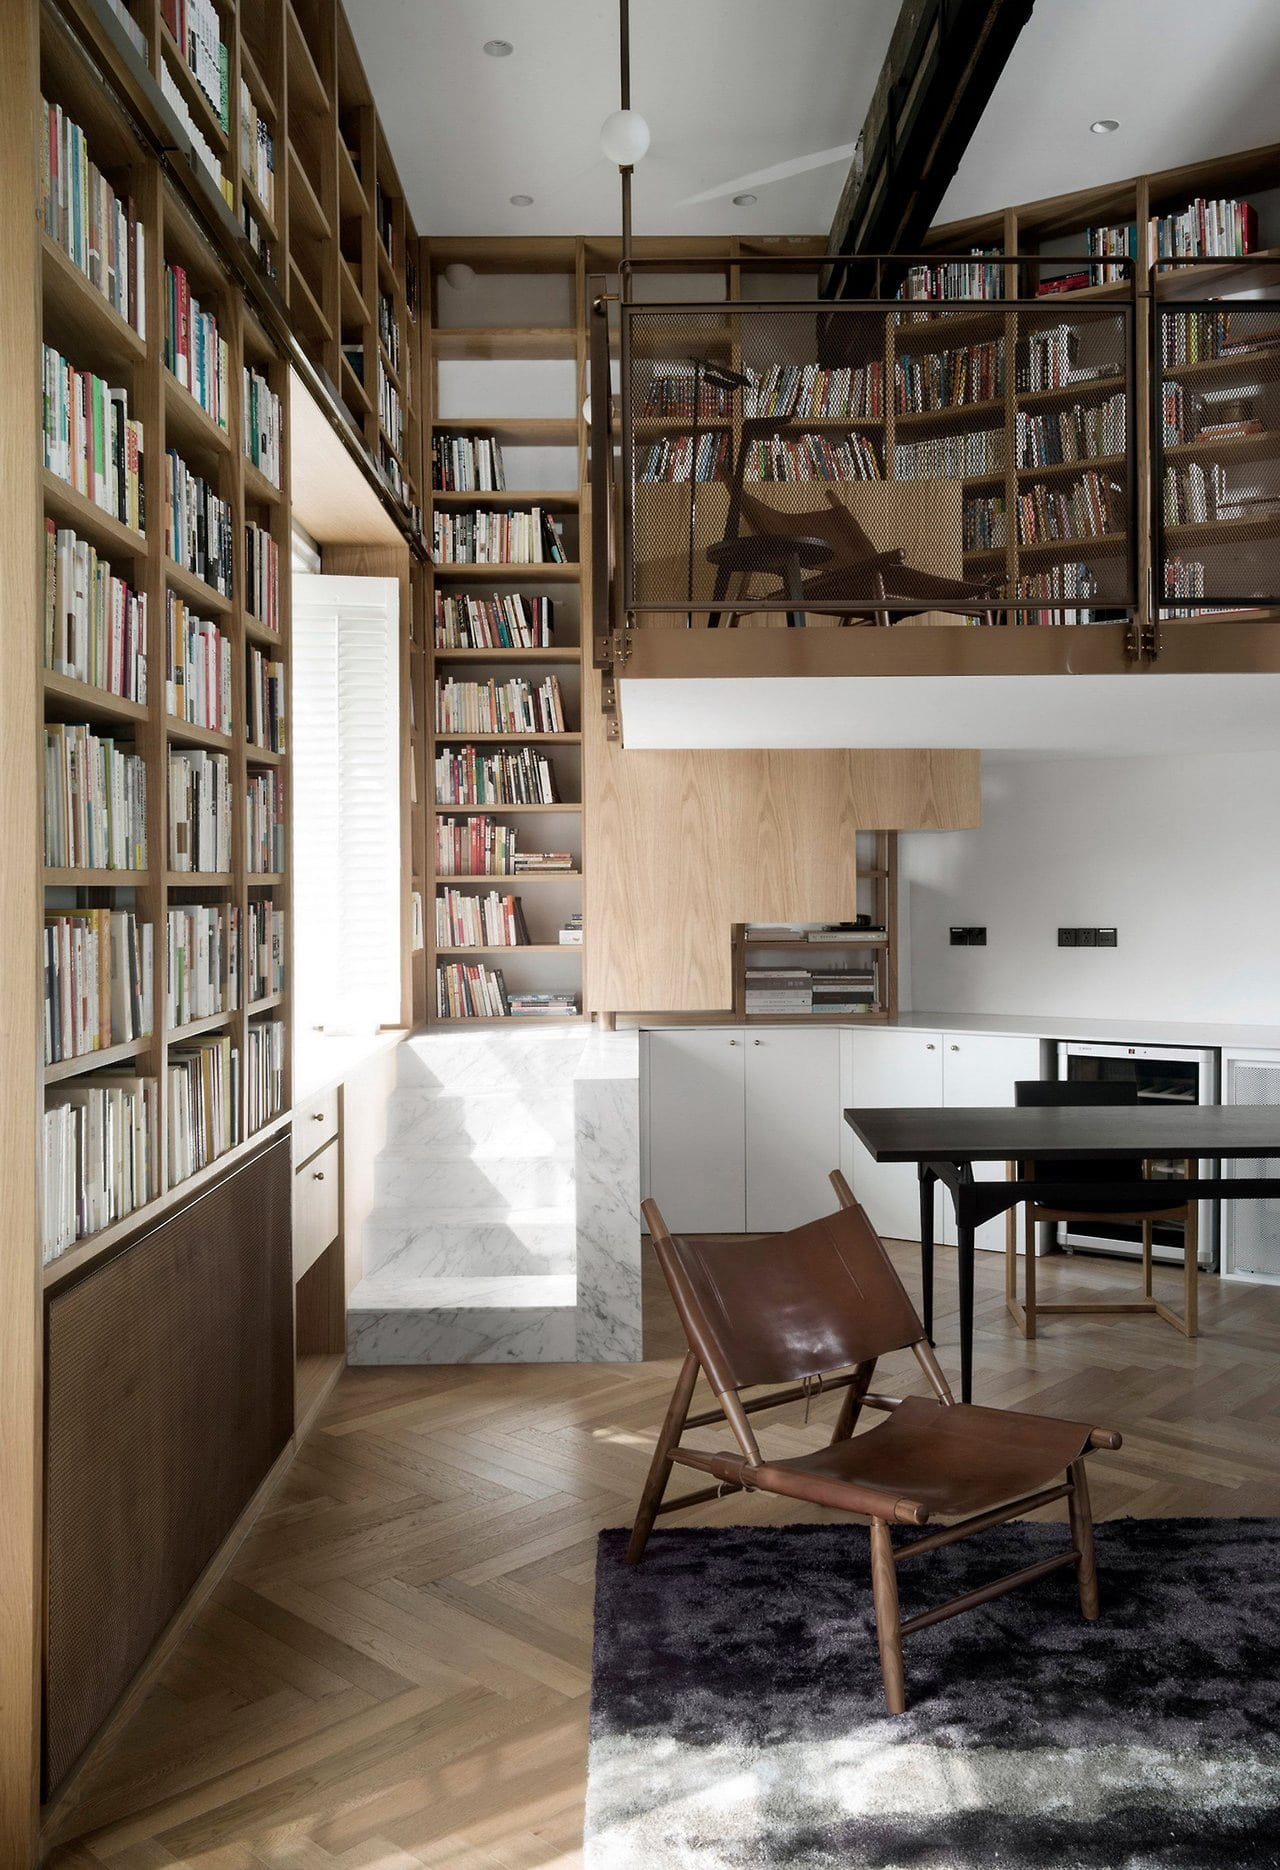 Shanghai Apartment Lined With FloorToCeiling Bookshelves